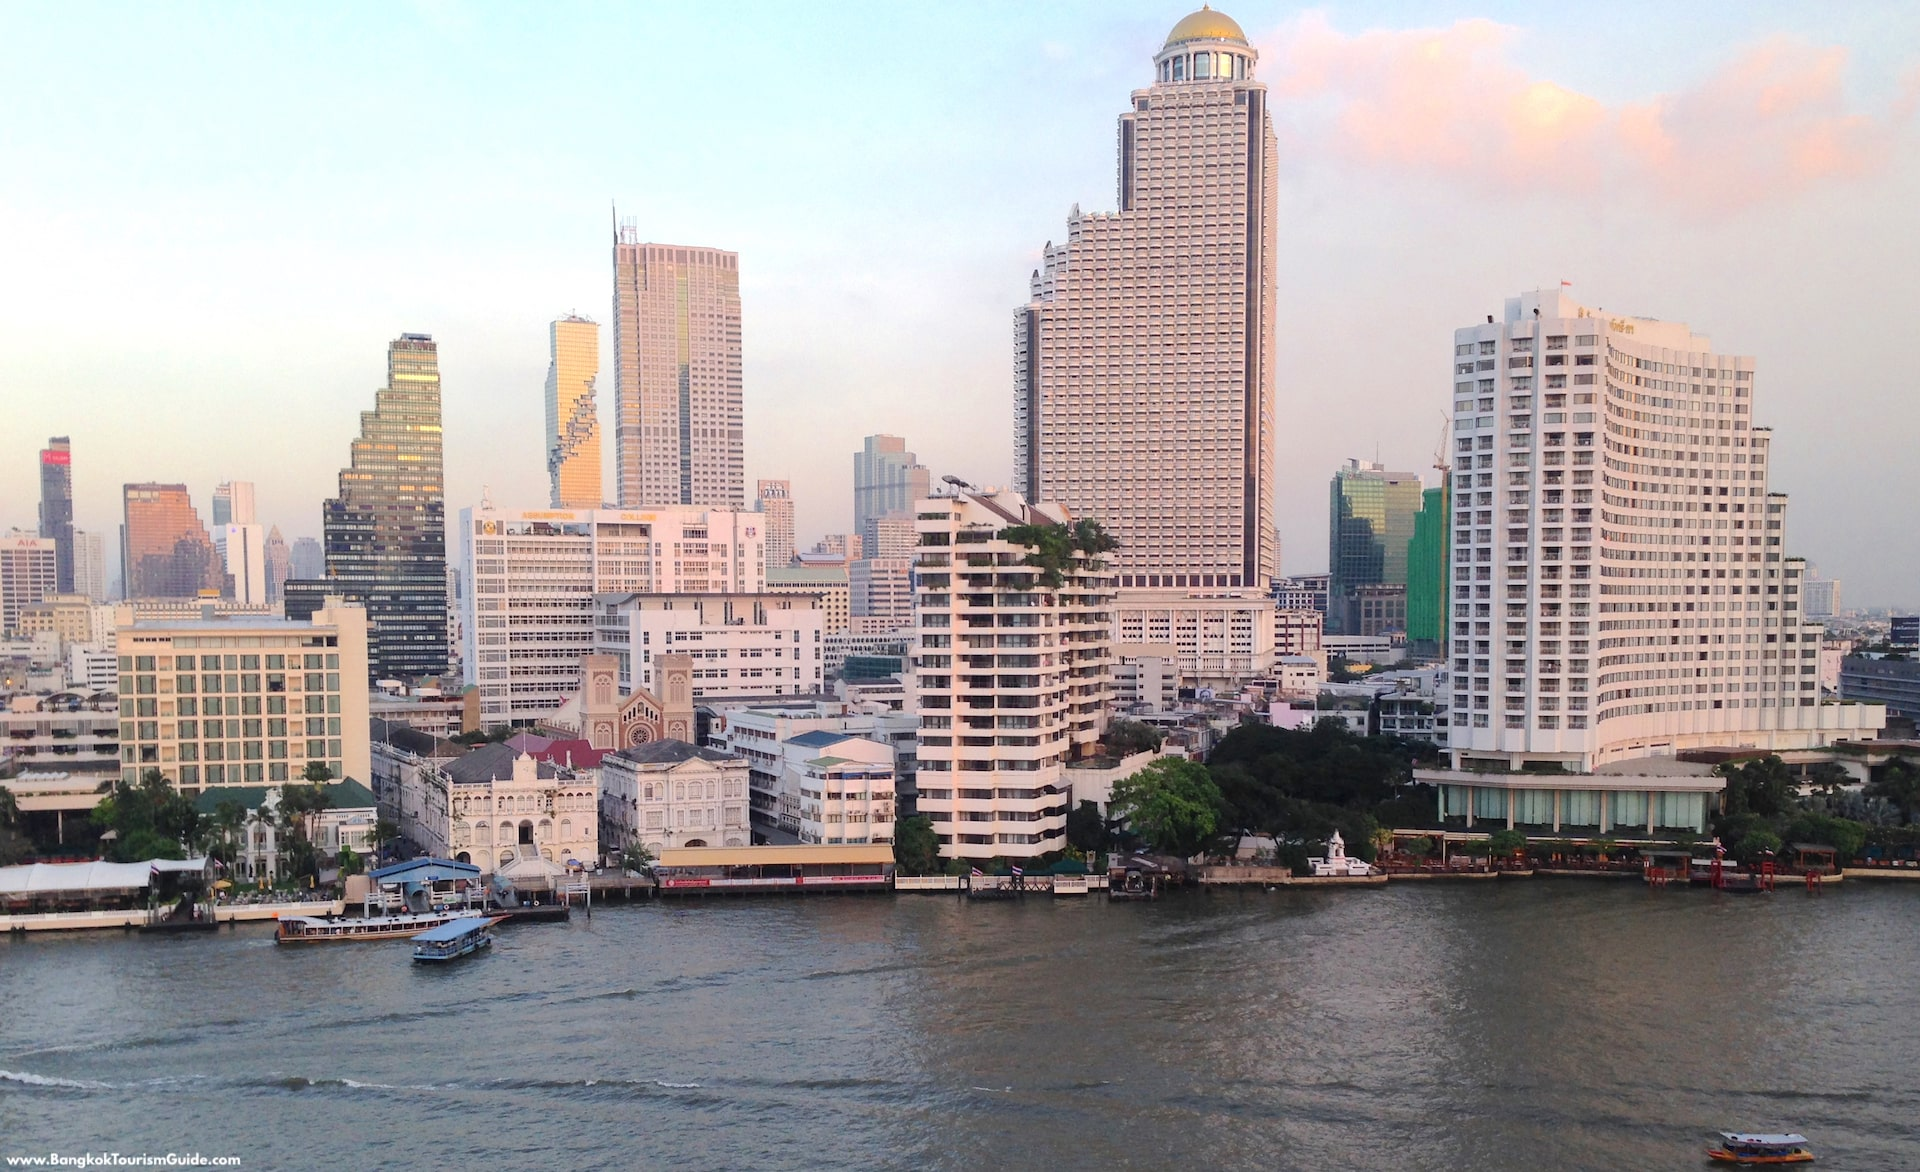 BANGKOK TOURISM GUIDE - 2021 Trip Planner and Travel Tips